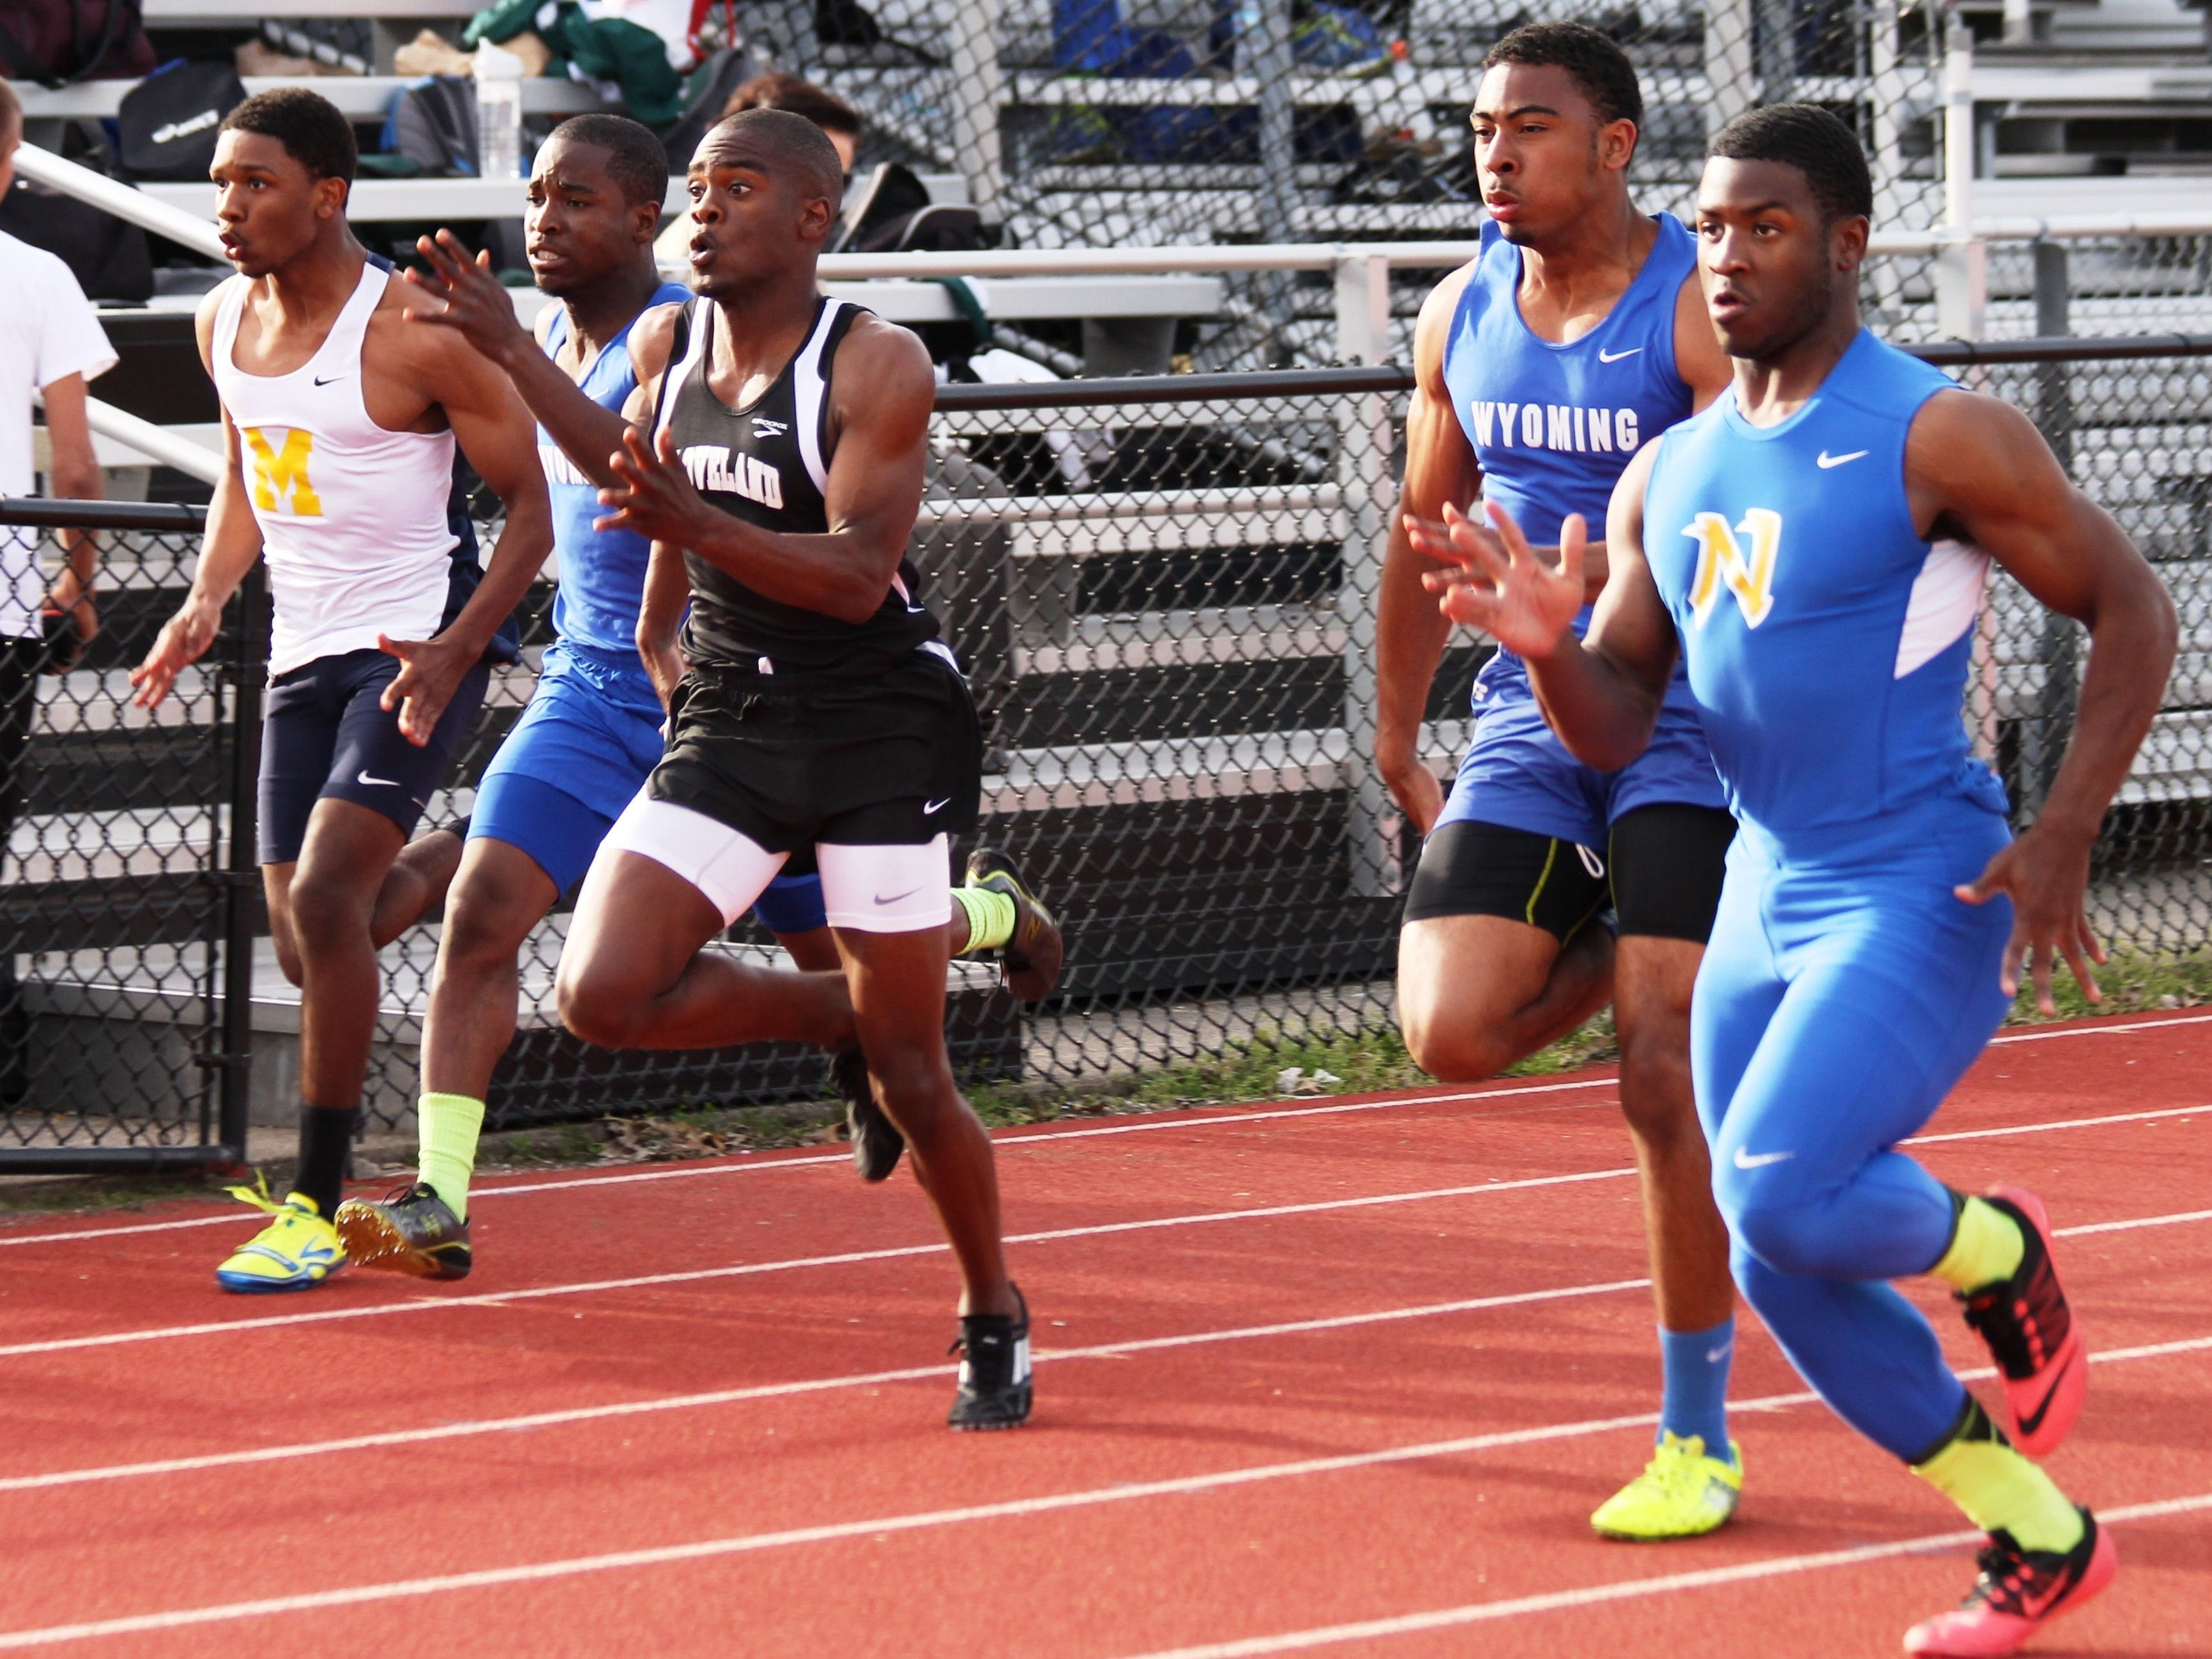 Northwest's DeVohn Jackson, right, is a three-time state qualifier and was a state champion in 4x100 meter relay in 2013.